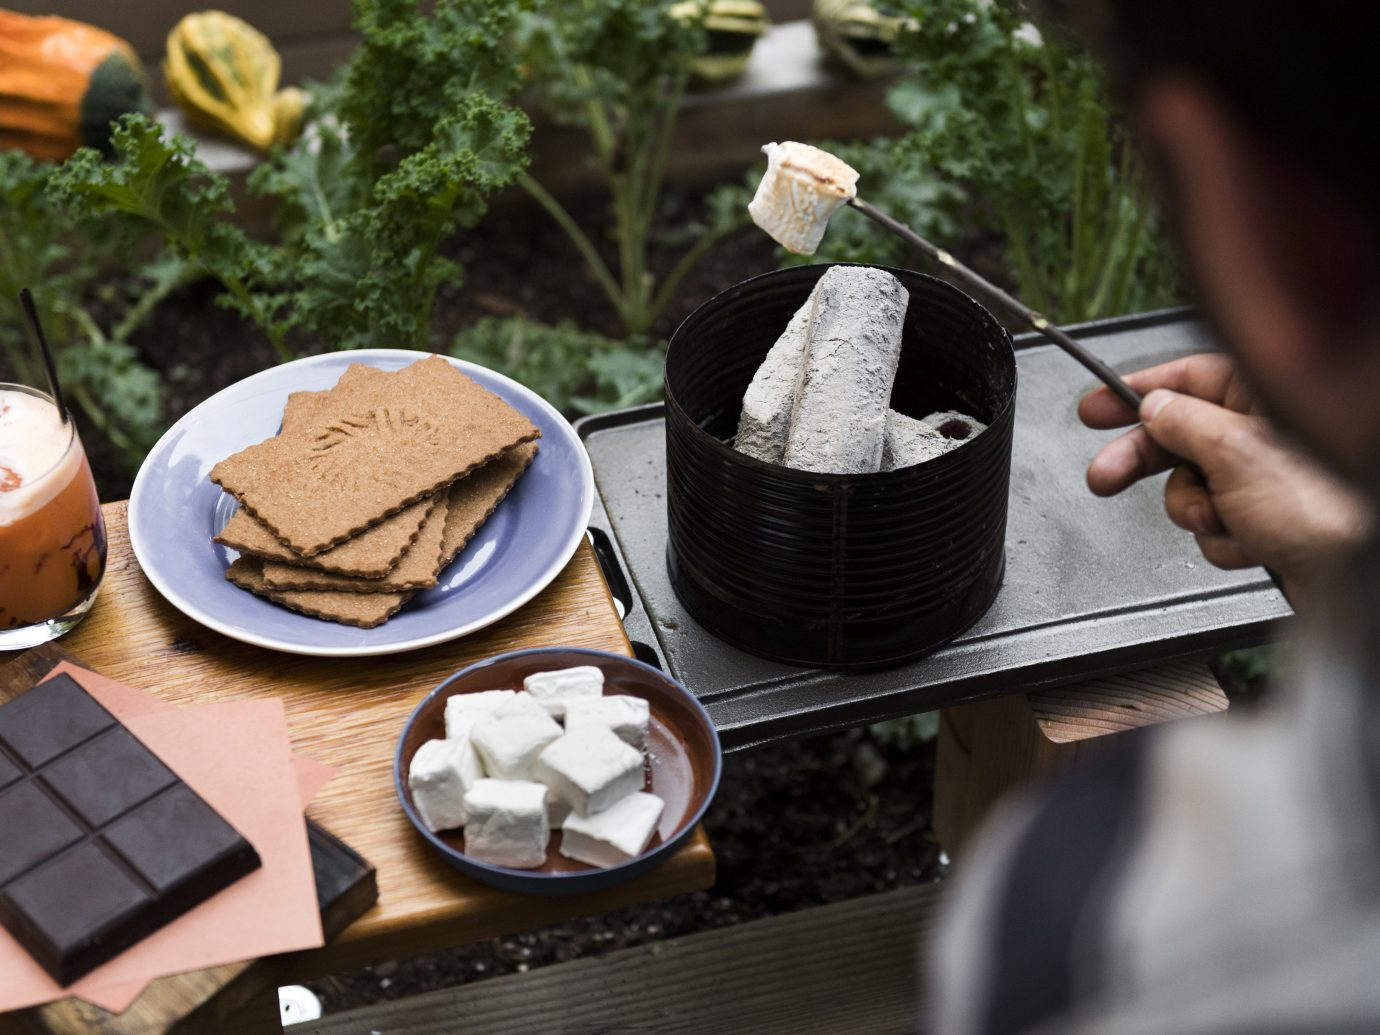 S'mores at Olmsted